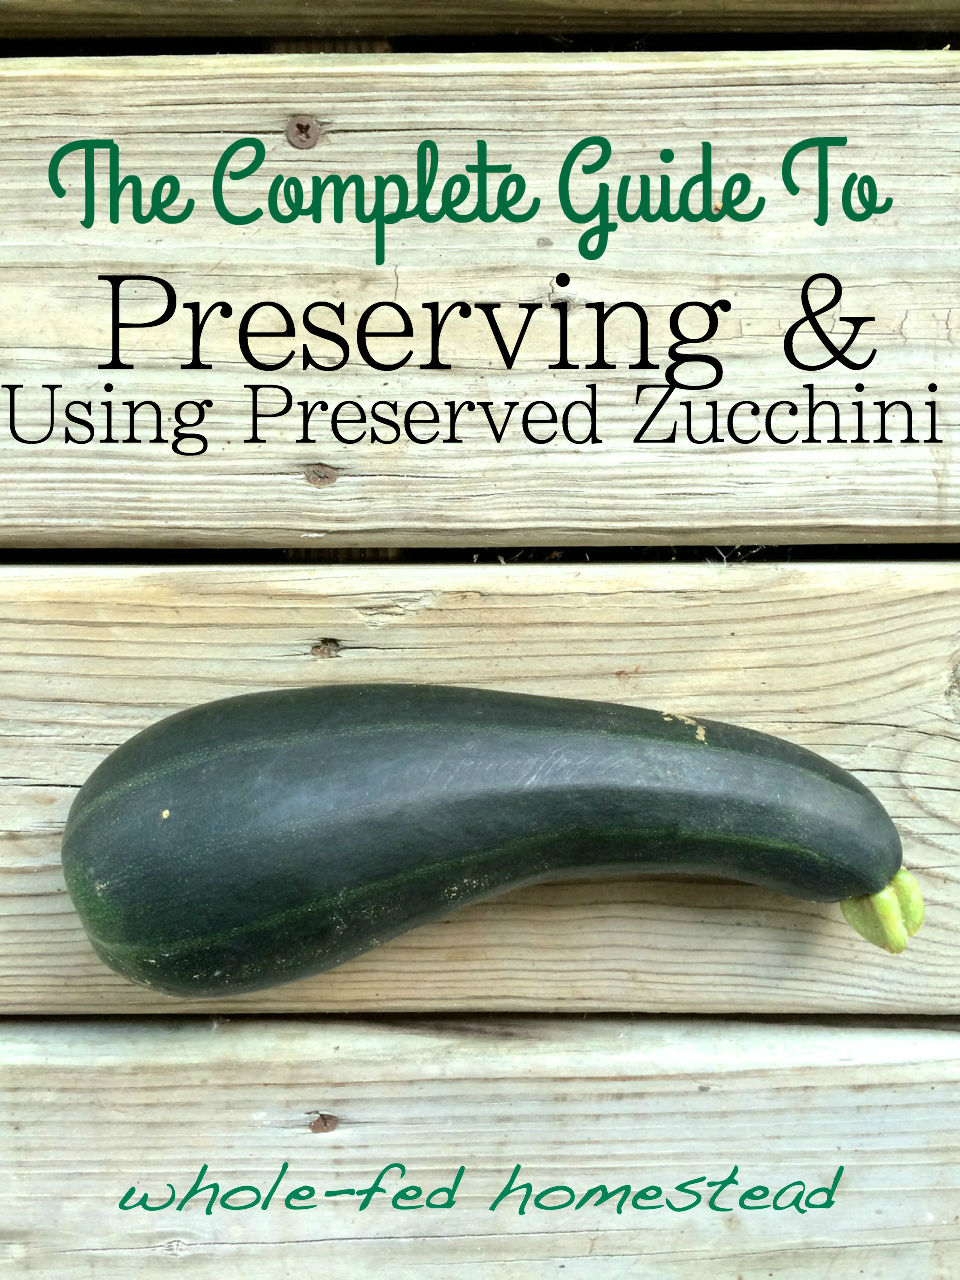 The Complete Guide to Preserving and Using Preserved Zucchini